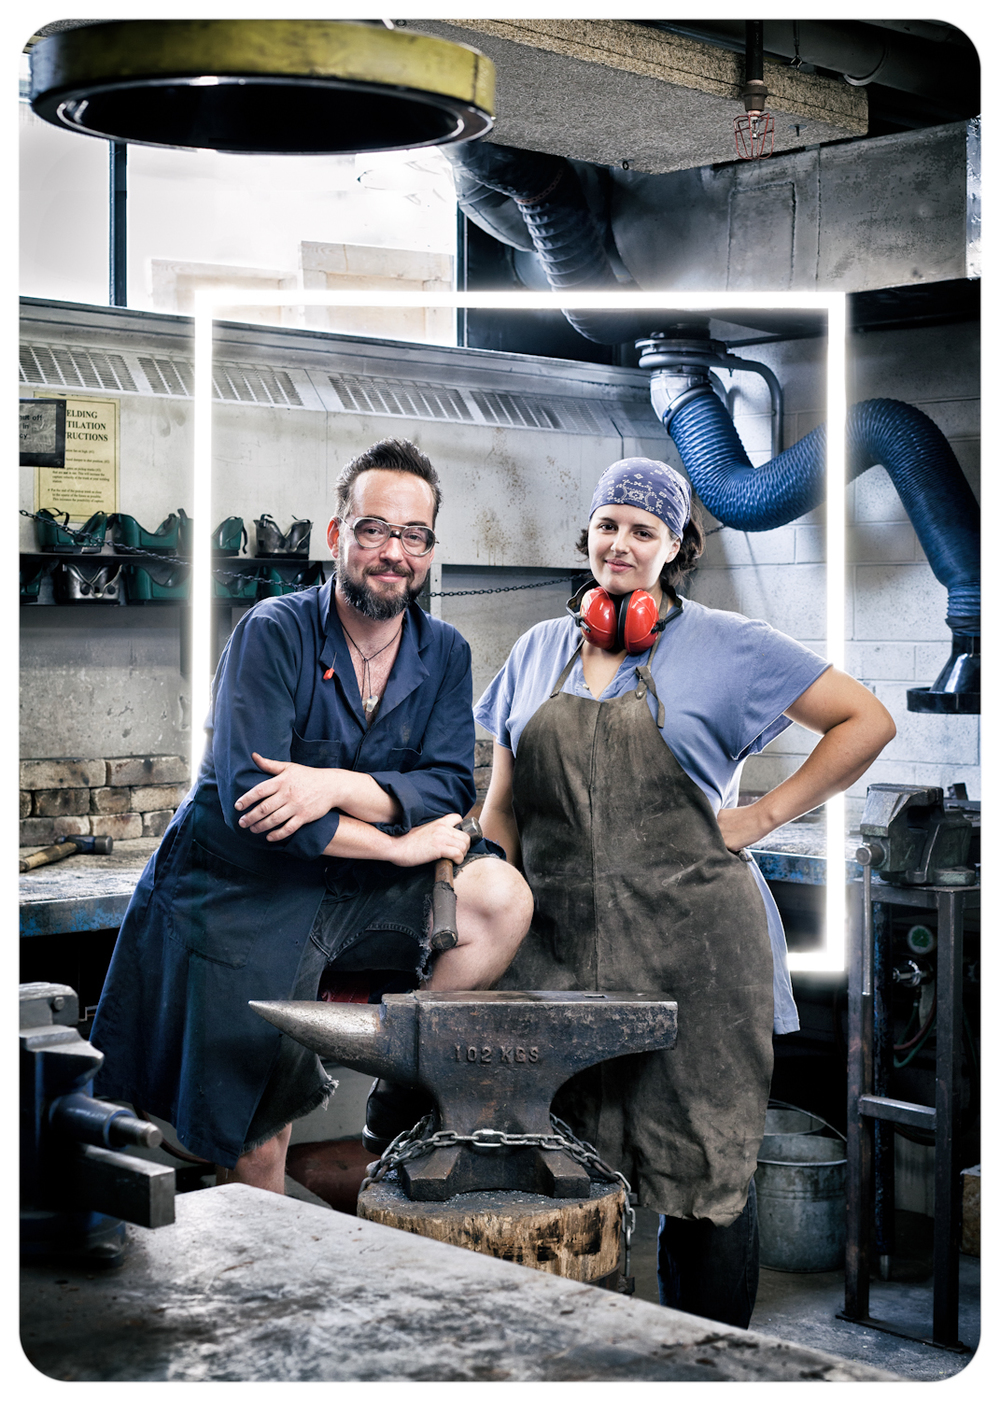 OCAD welding shop staff, Sketch Magazine